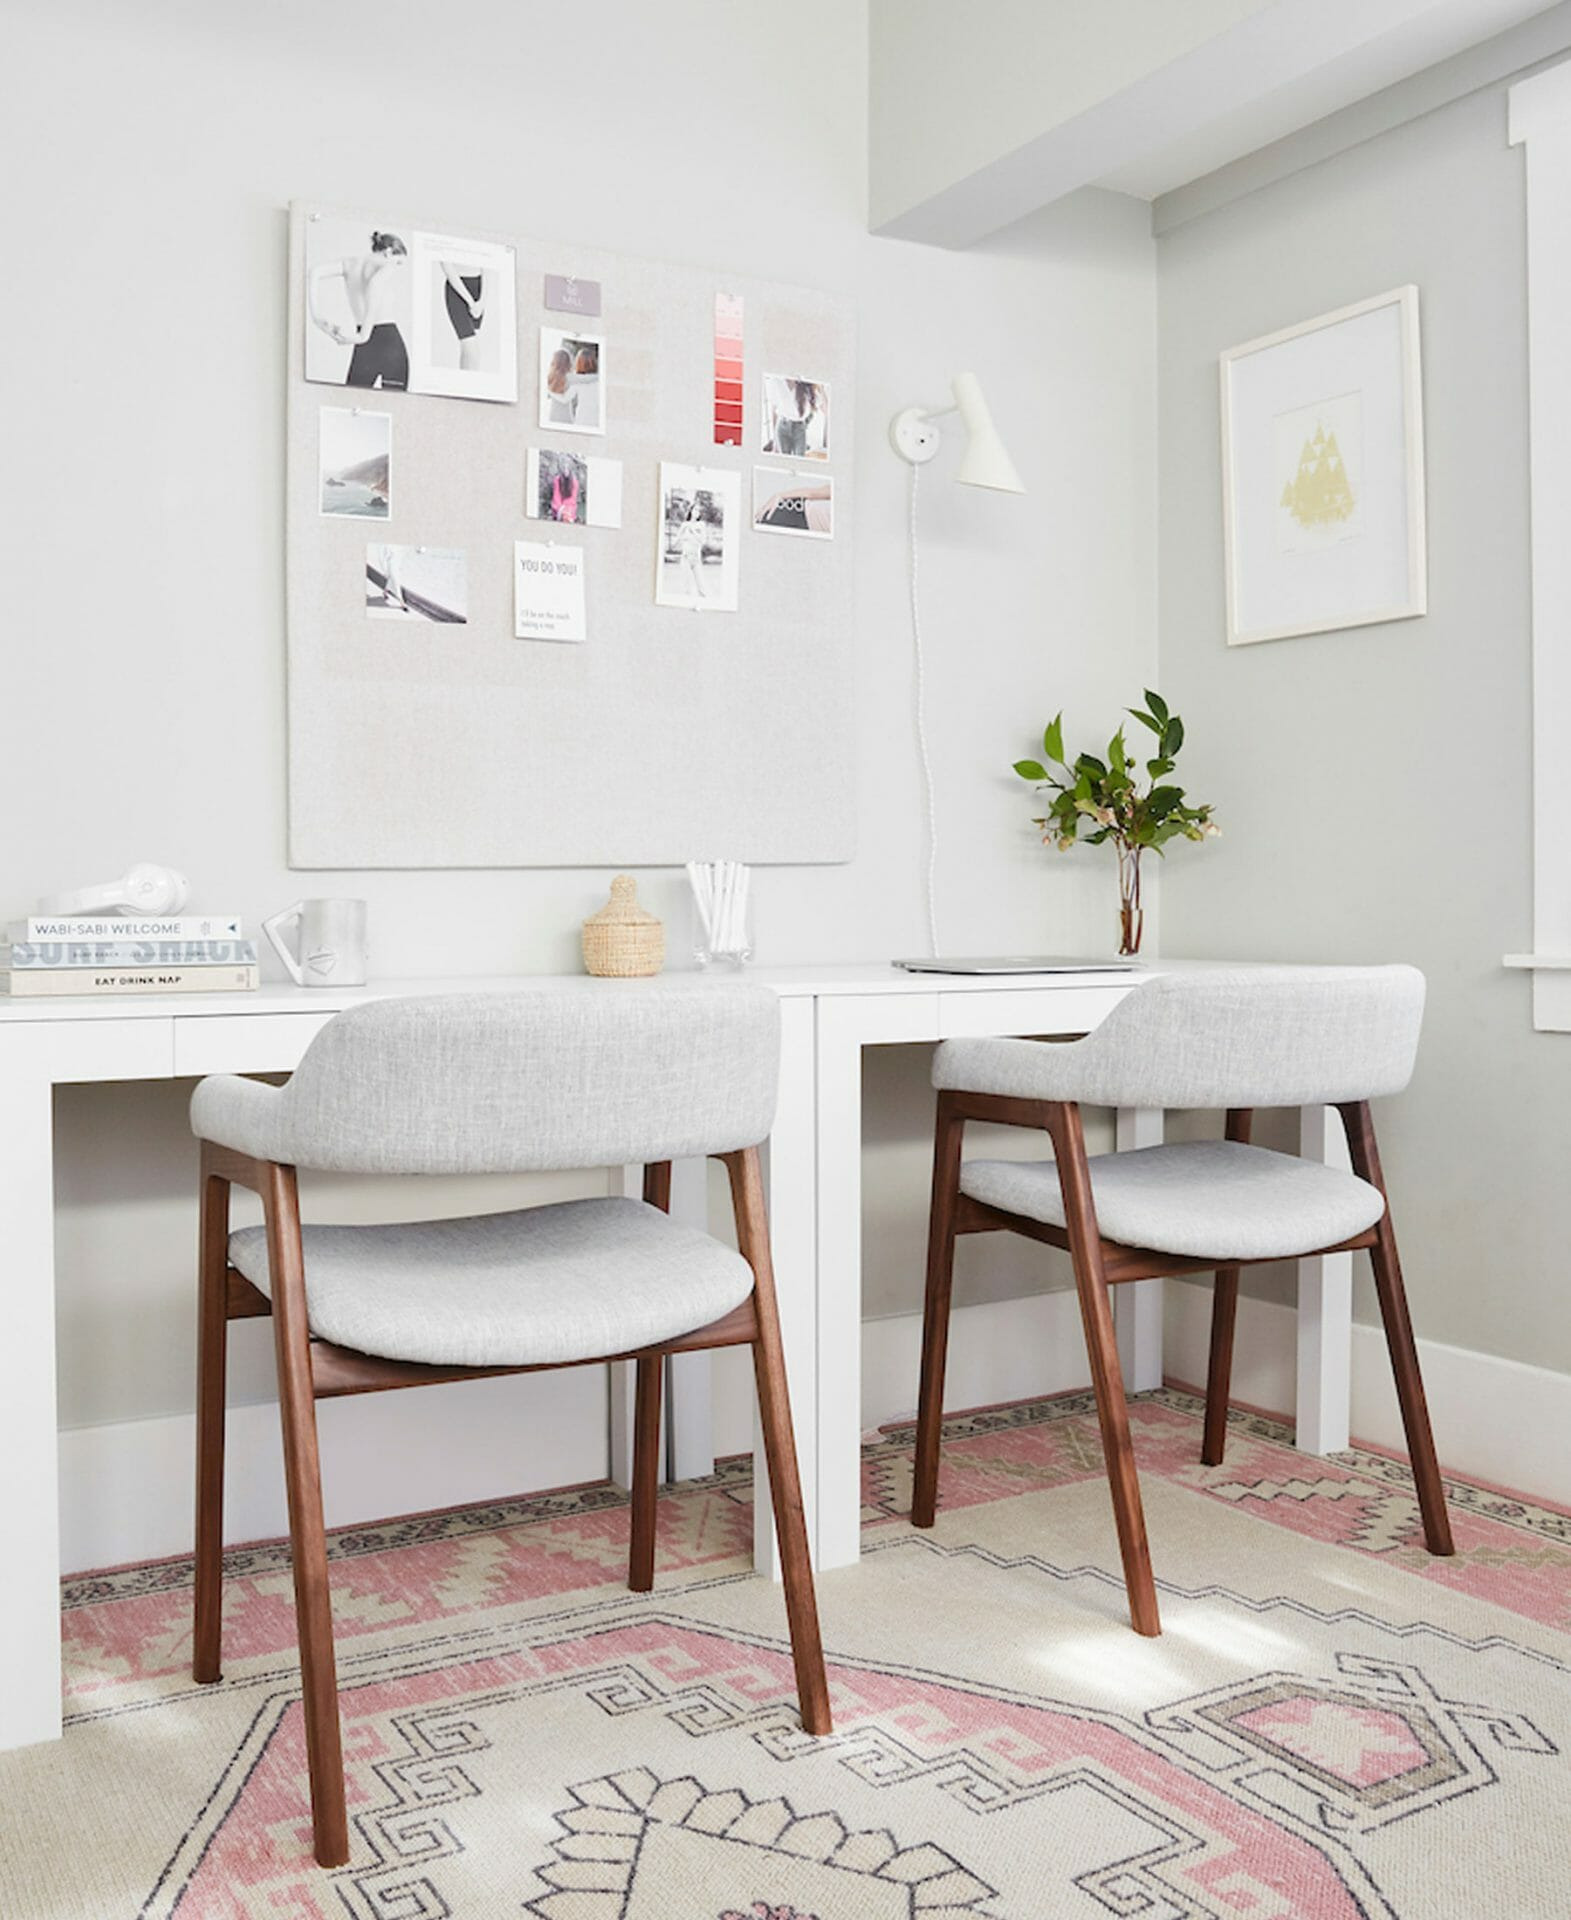 Two Savis Chairs and two white desks are seen in Shira Gill's home office.